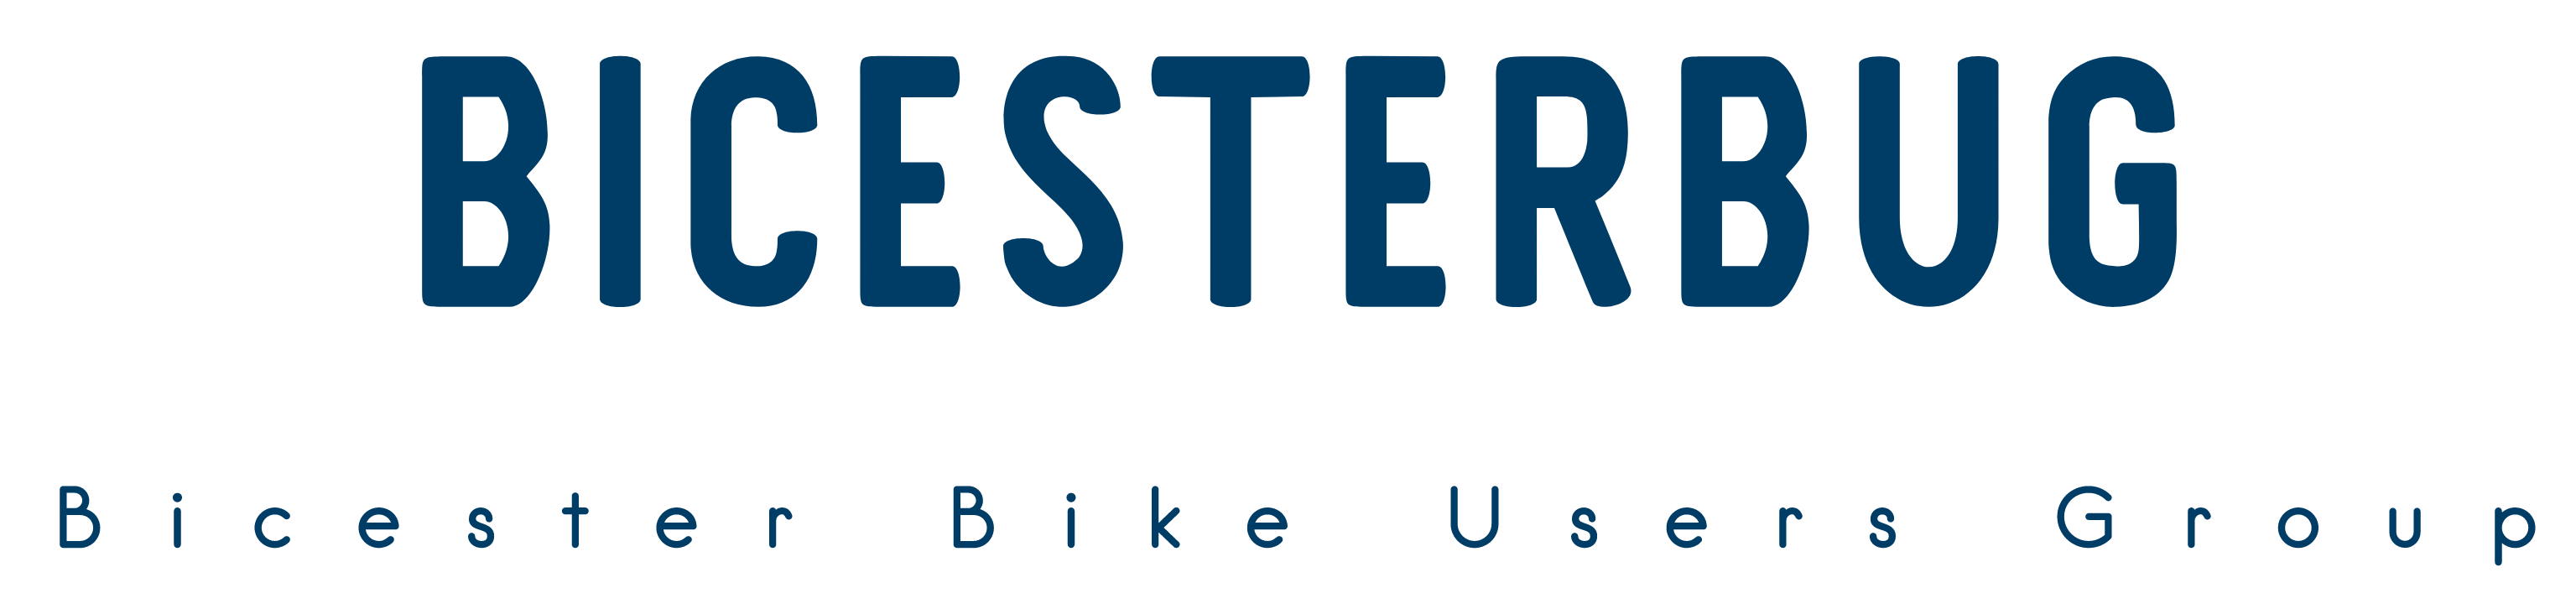 Bicester Bike Users Group